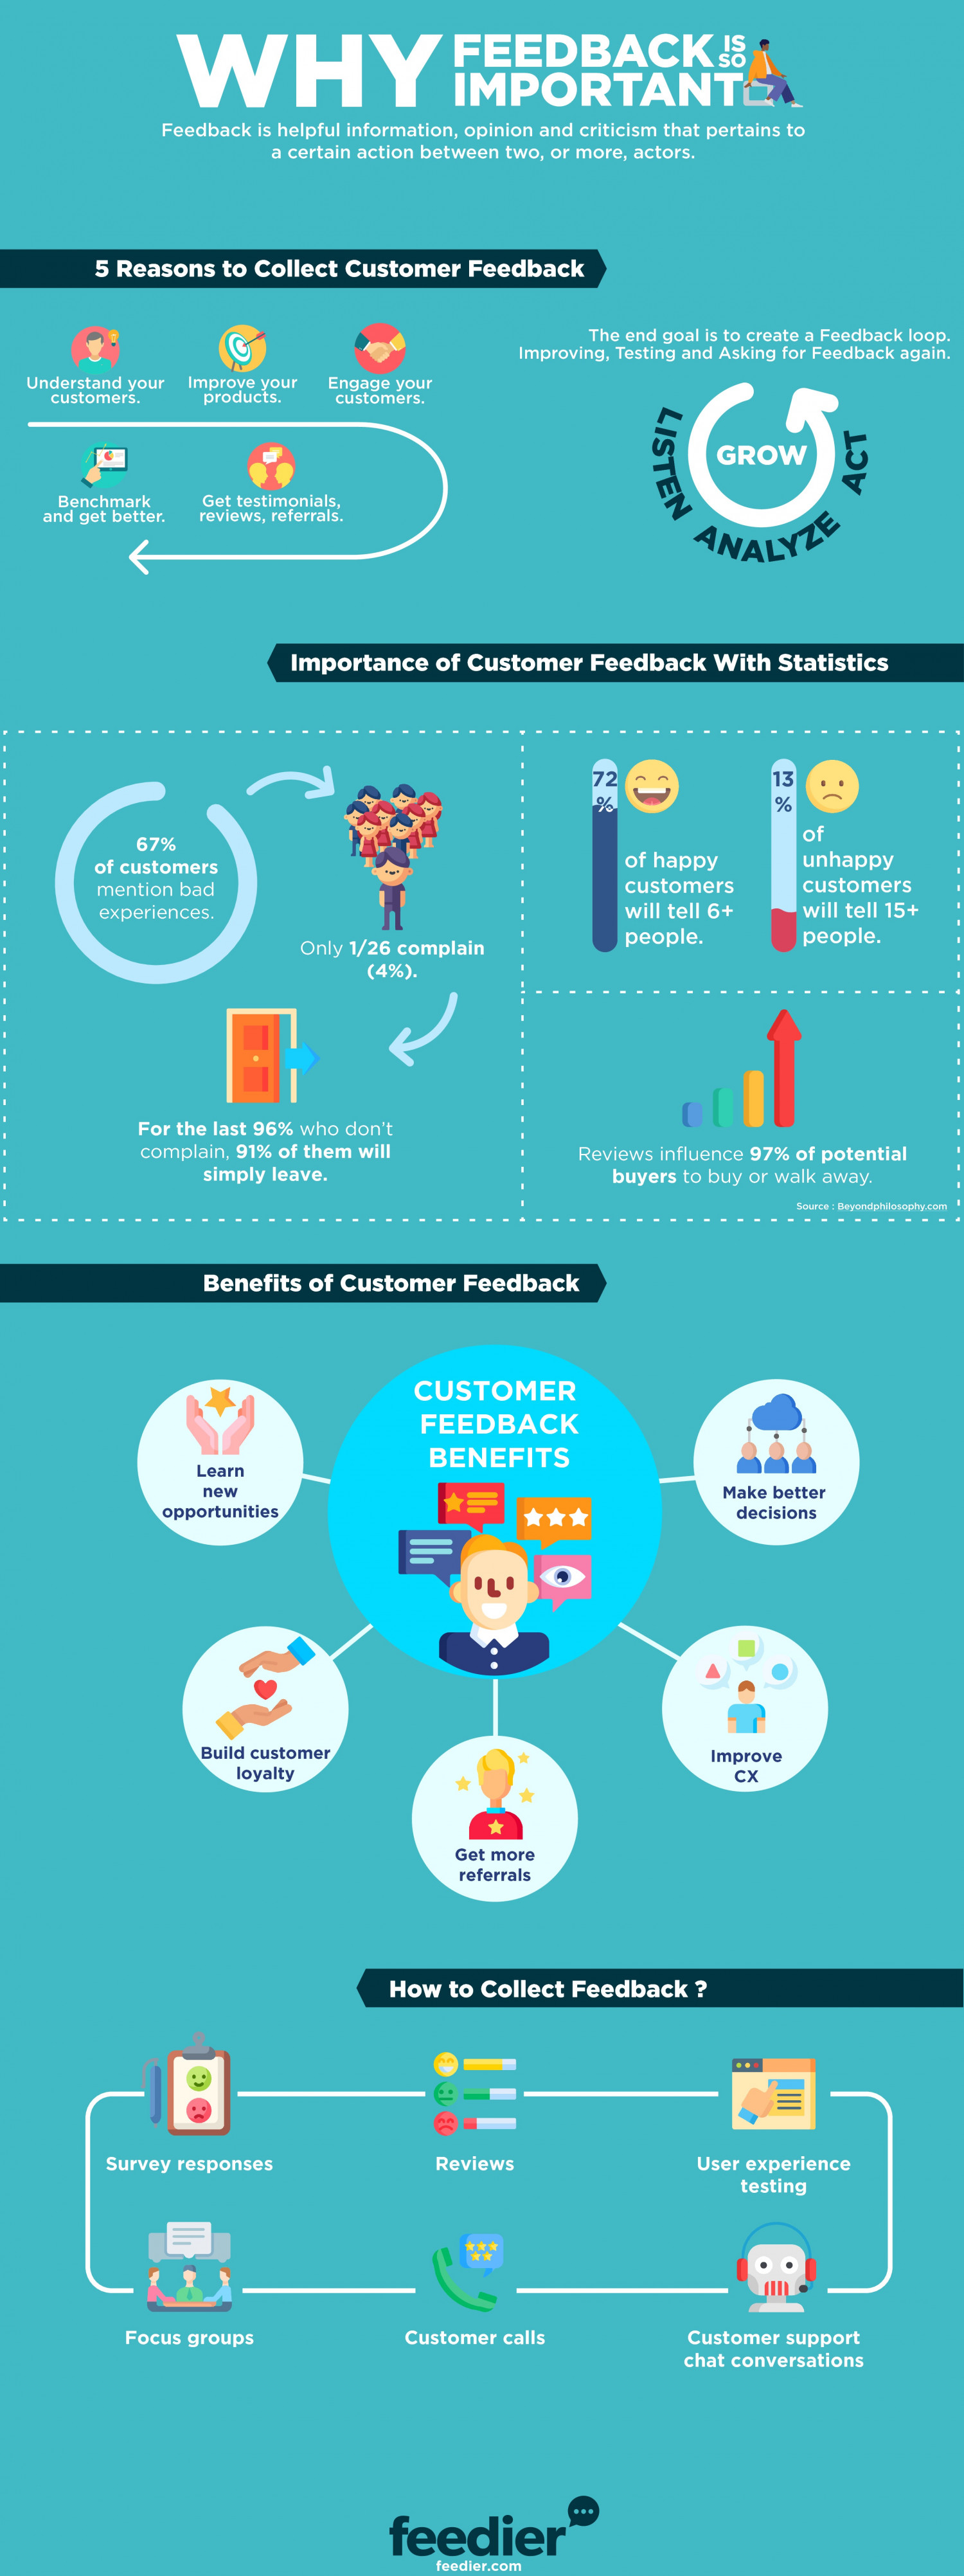 Why Feedback is so Important Infographic